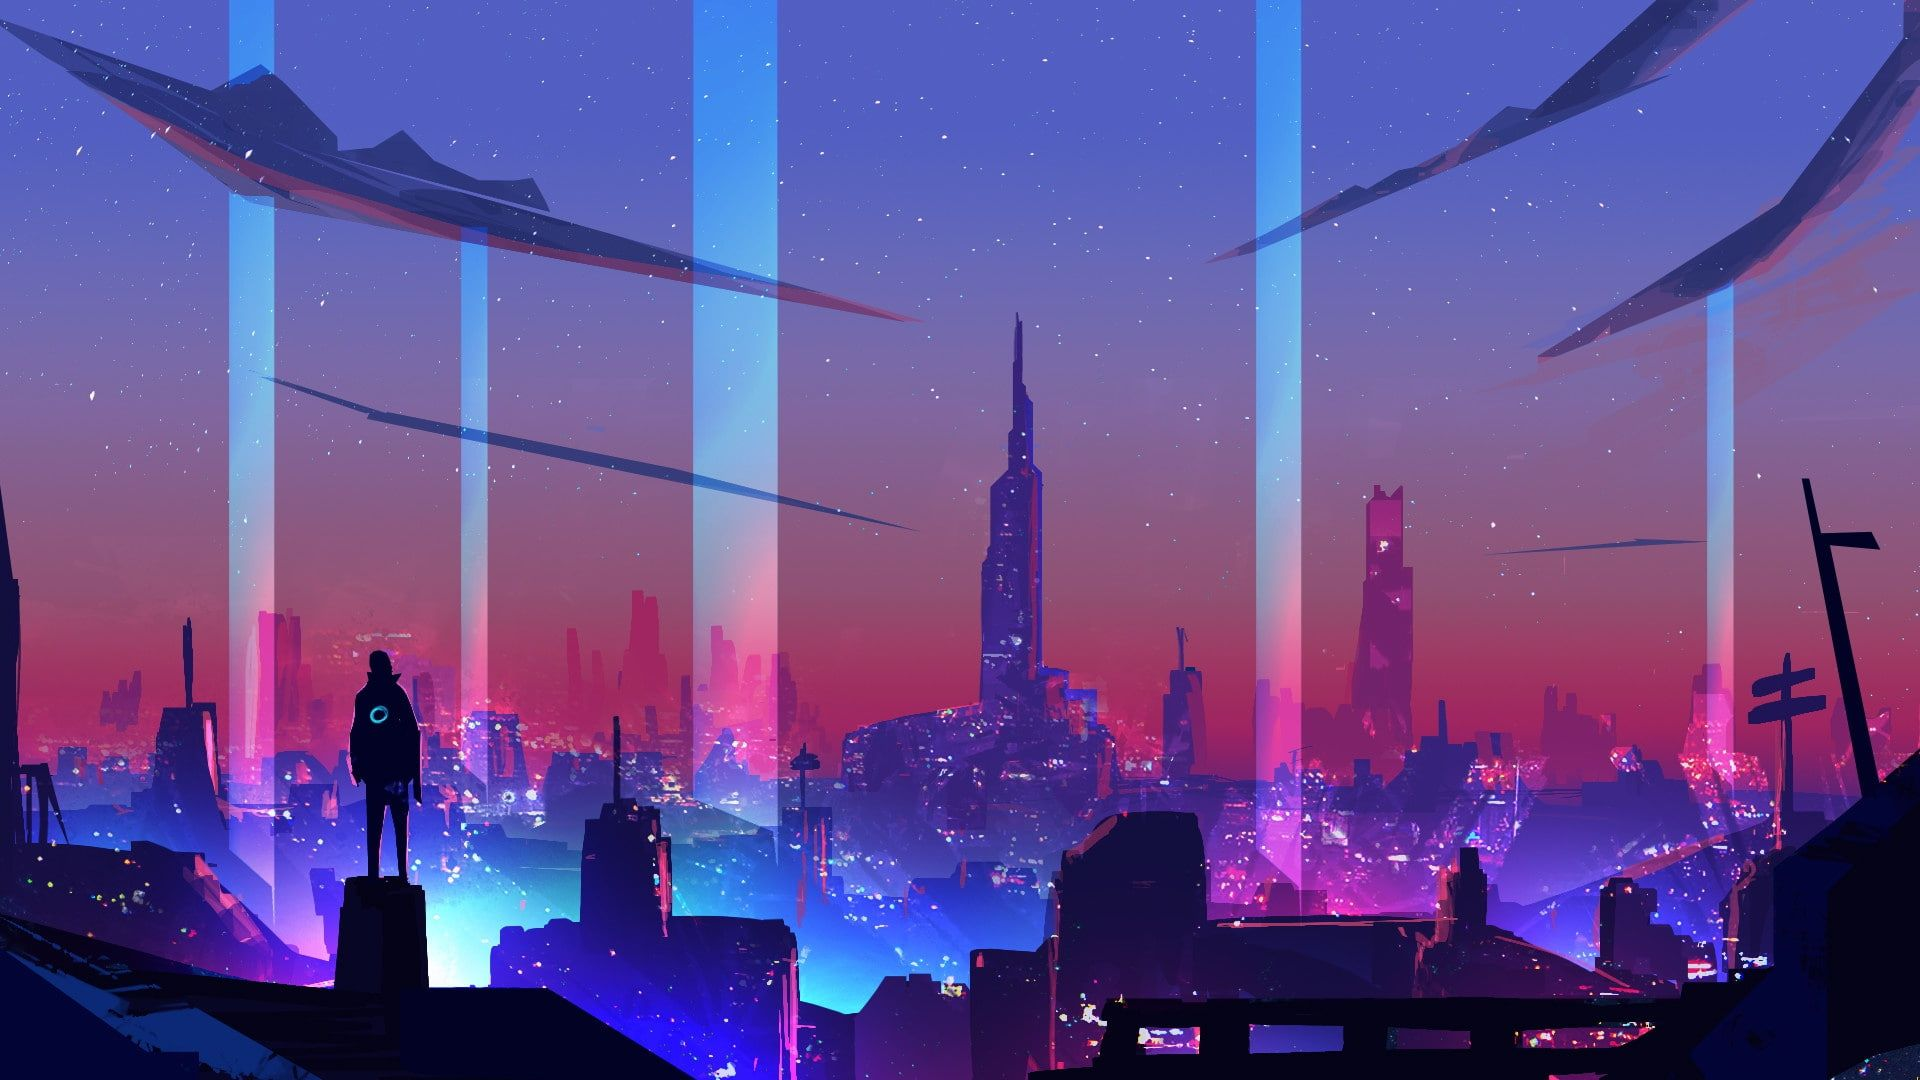 Synth Retrowave Neon Cyberpunk Digital Art 1080p Wallpaper Hdwallpaper Desktop Neon Wallpaper City Wallpaper Cyberpunk Art